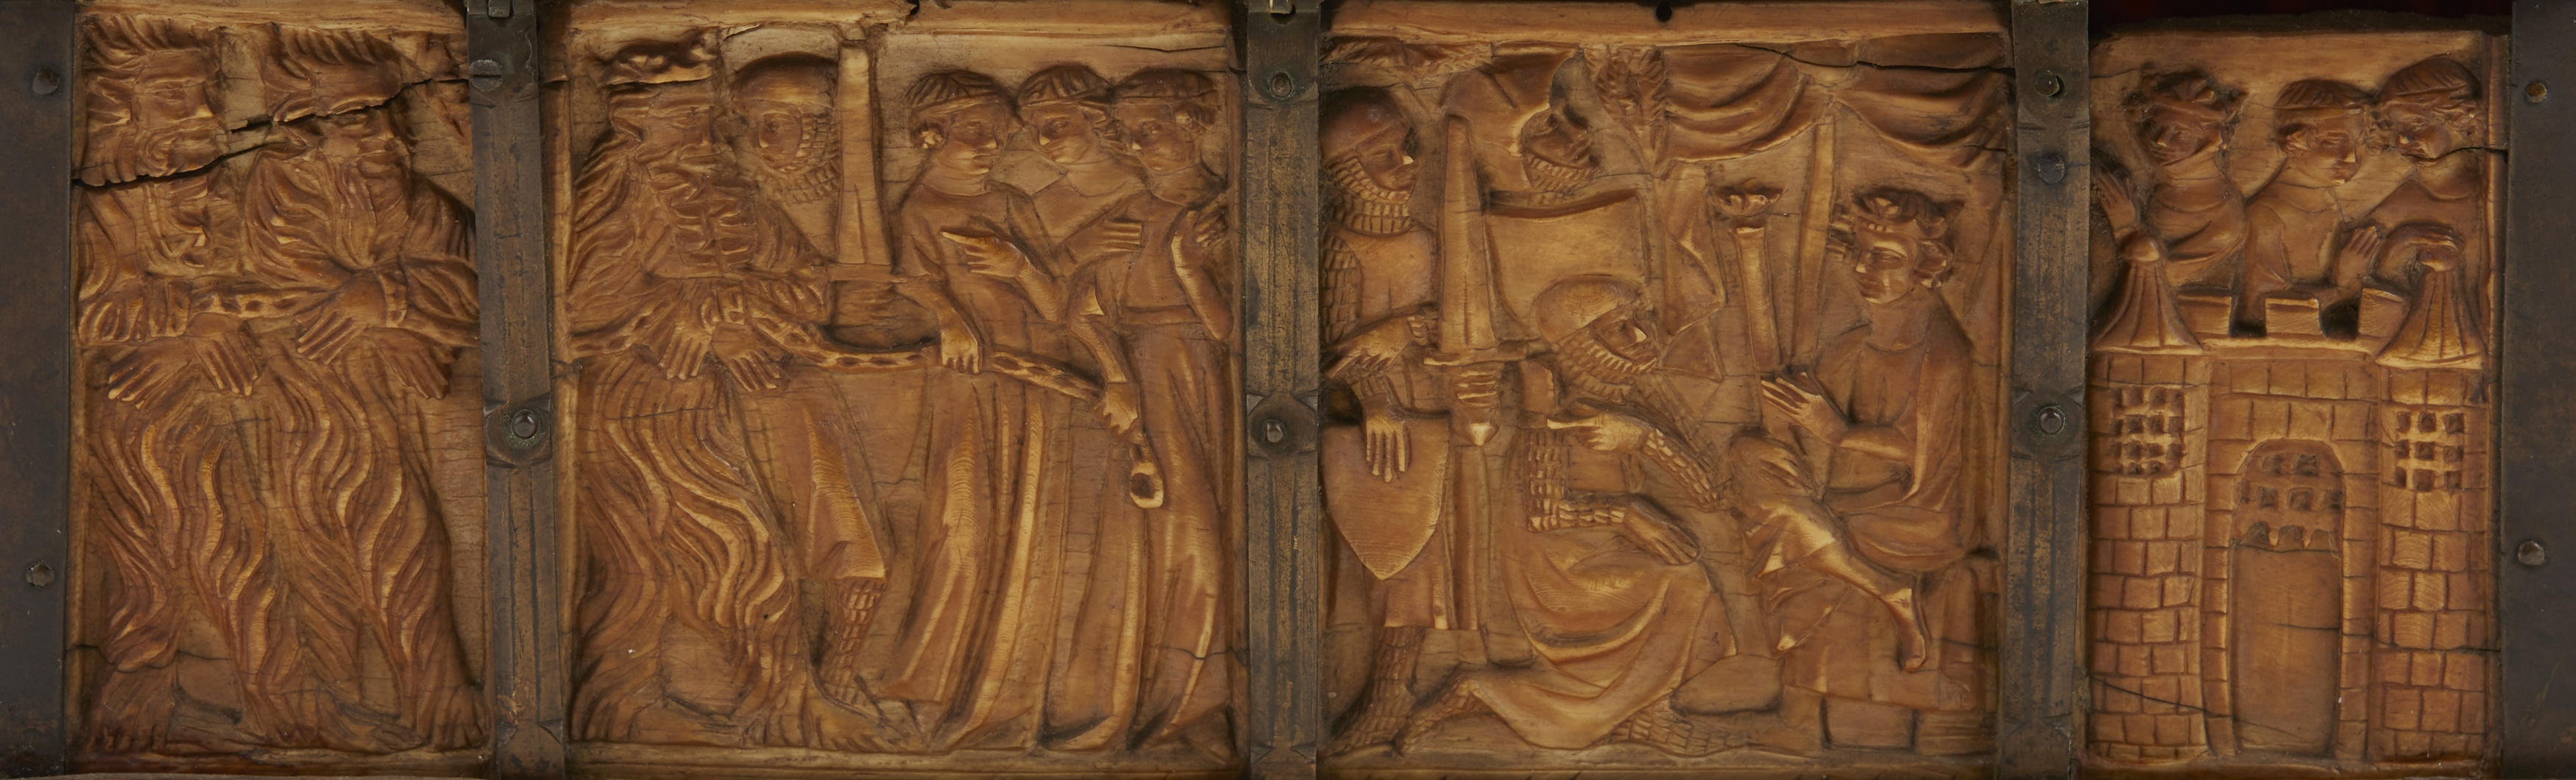 Y ◆ RARE AND IMPORTANT FRENCH GOTHIC IVORY COMPOSITE CASKET CIRCA 1330 - Image 2 of 8